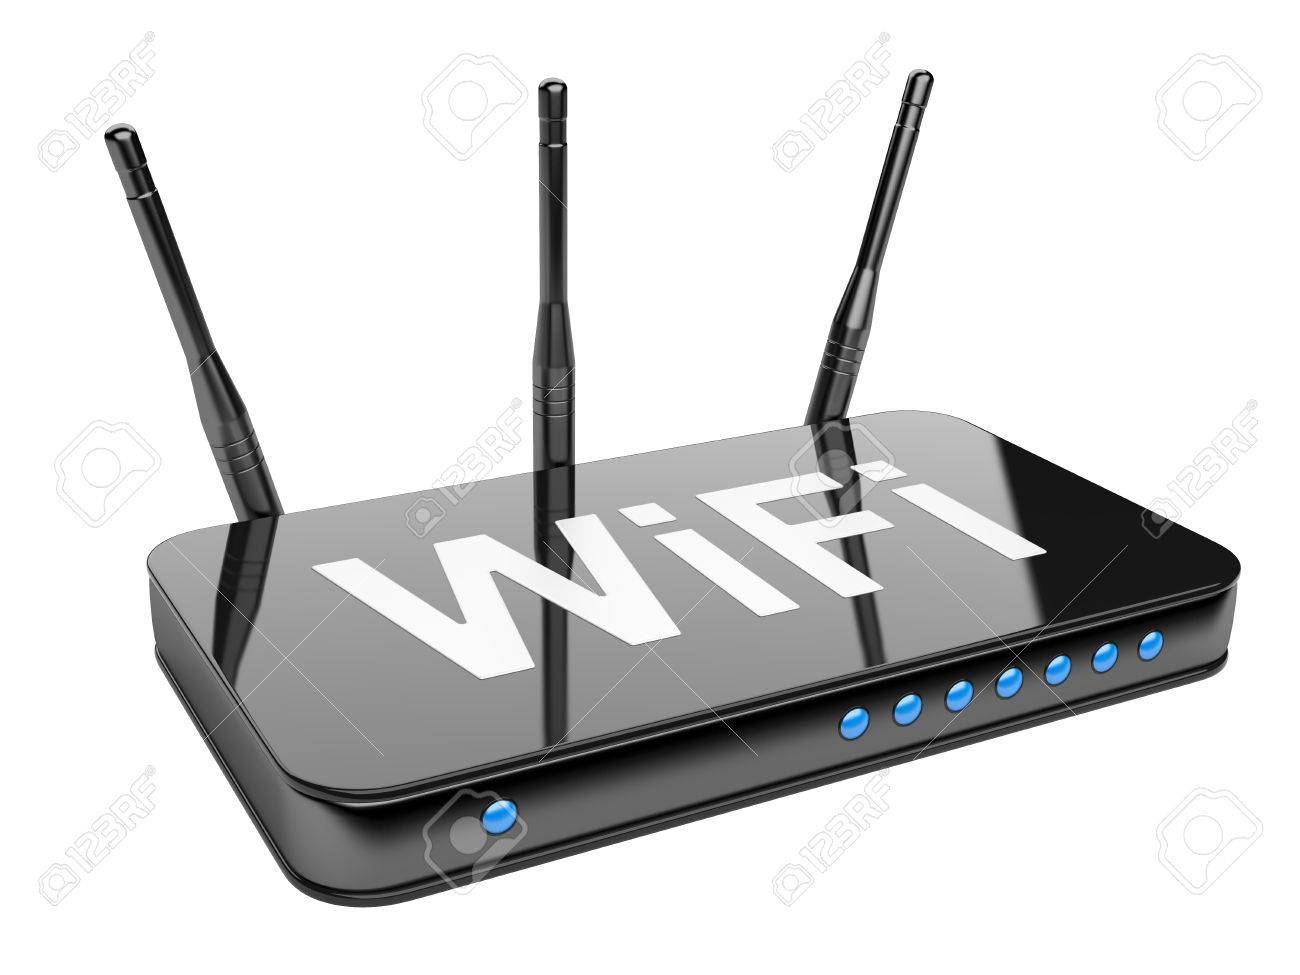 https://previews.123rf.com/images/lcs813/lcs8131408/lcs813140800022/31037419-Wi-Fi-Router-Isolated-on-a-white-background-3d-image-Stock-Photo.jpg